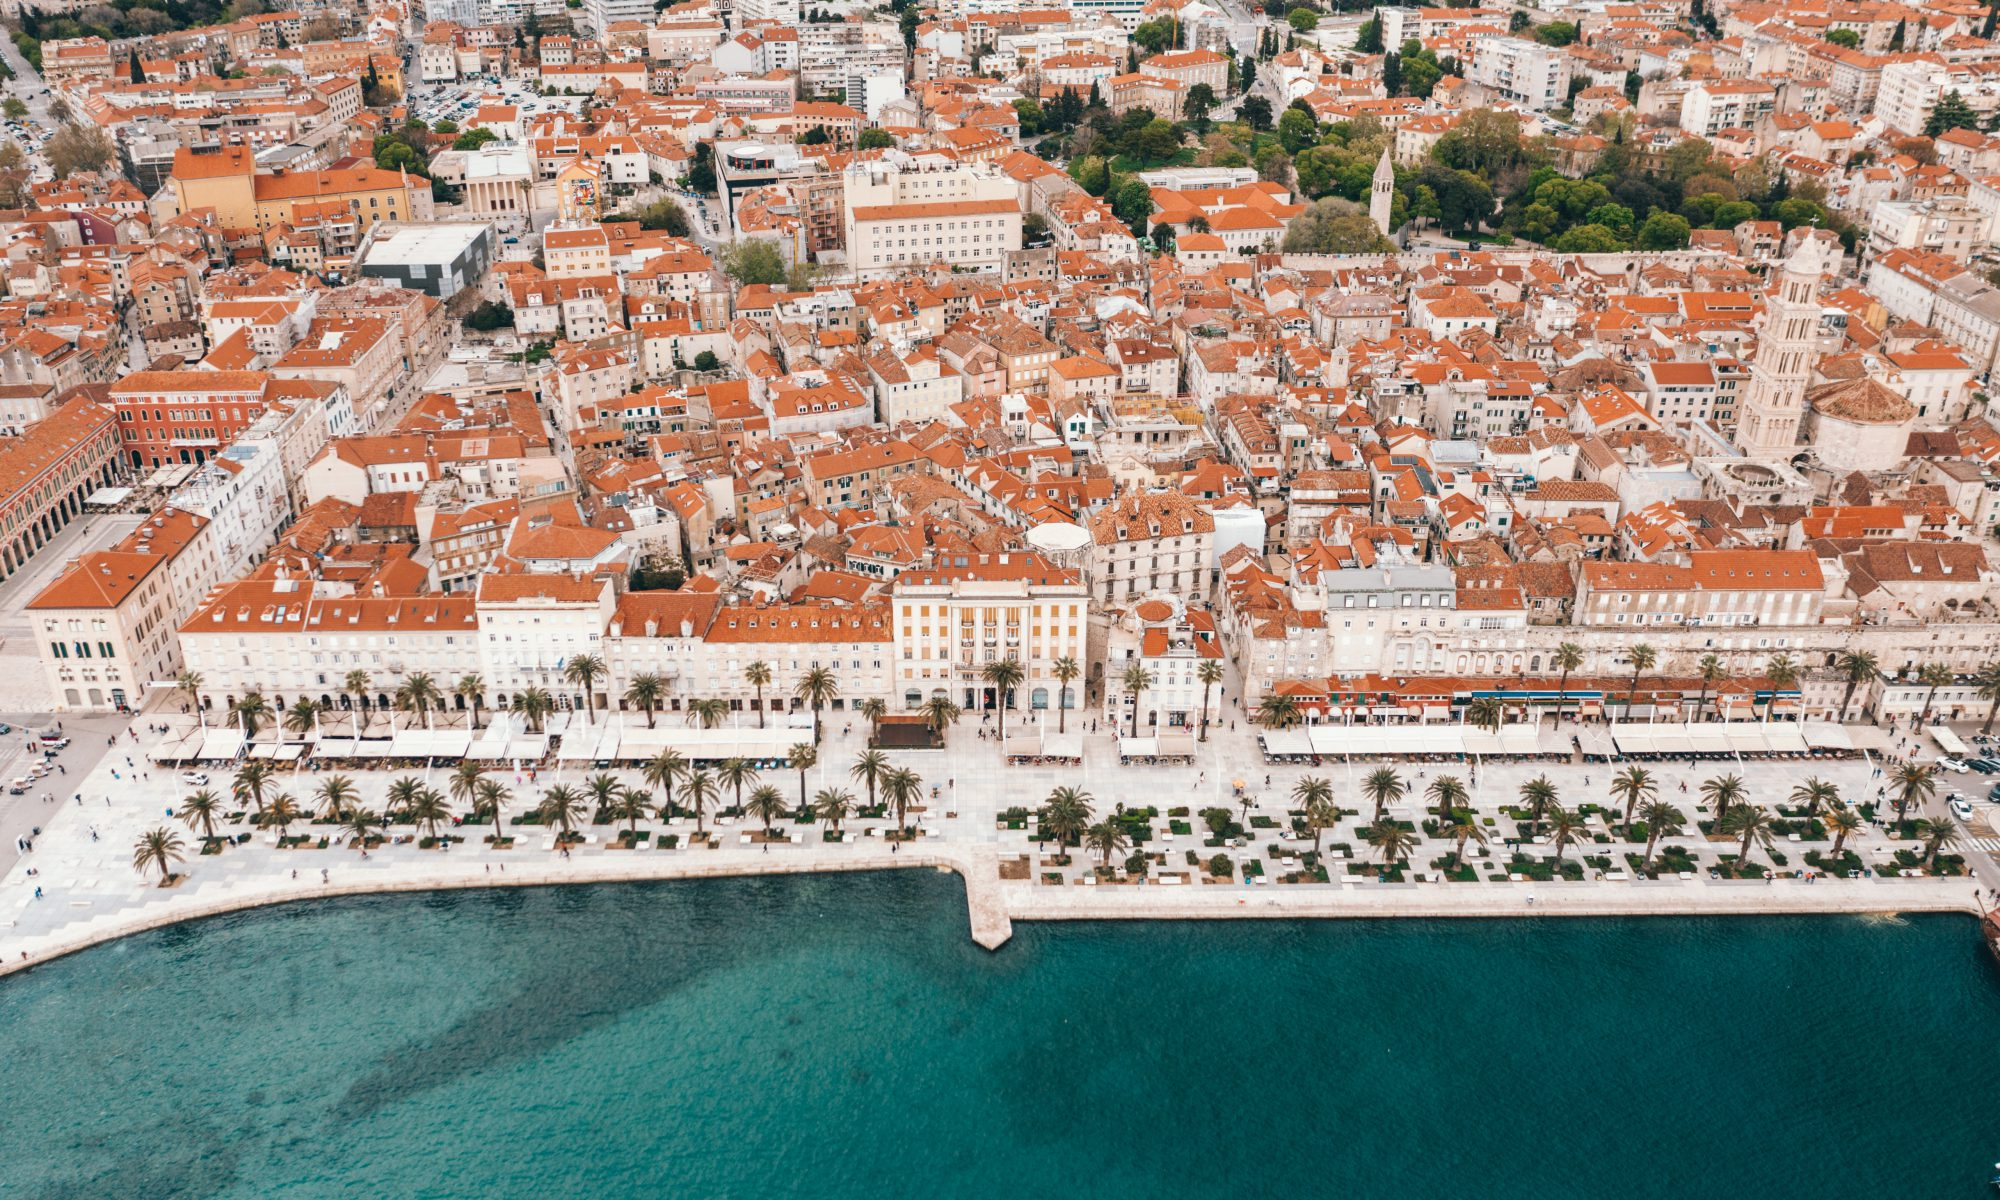 Areal view of Split, Croatia by Spencer Davis